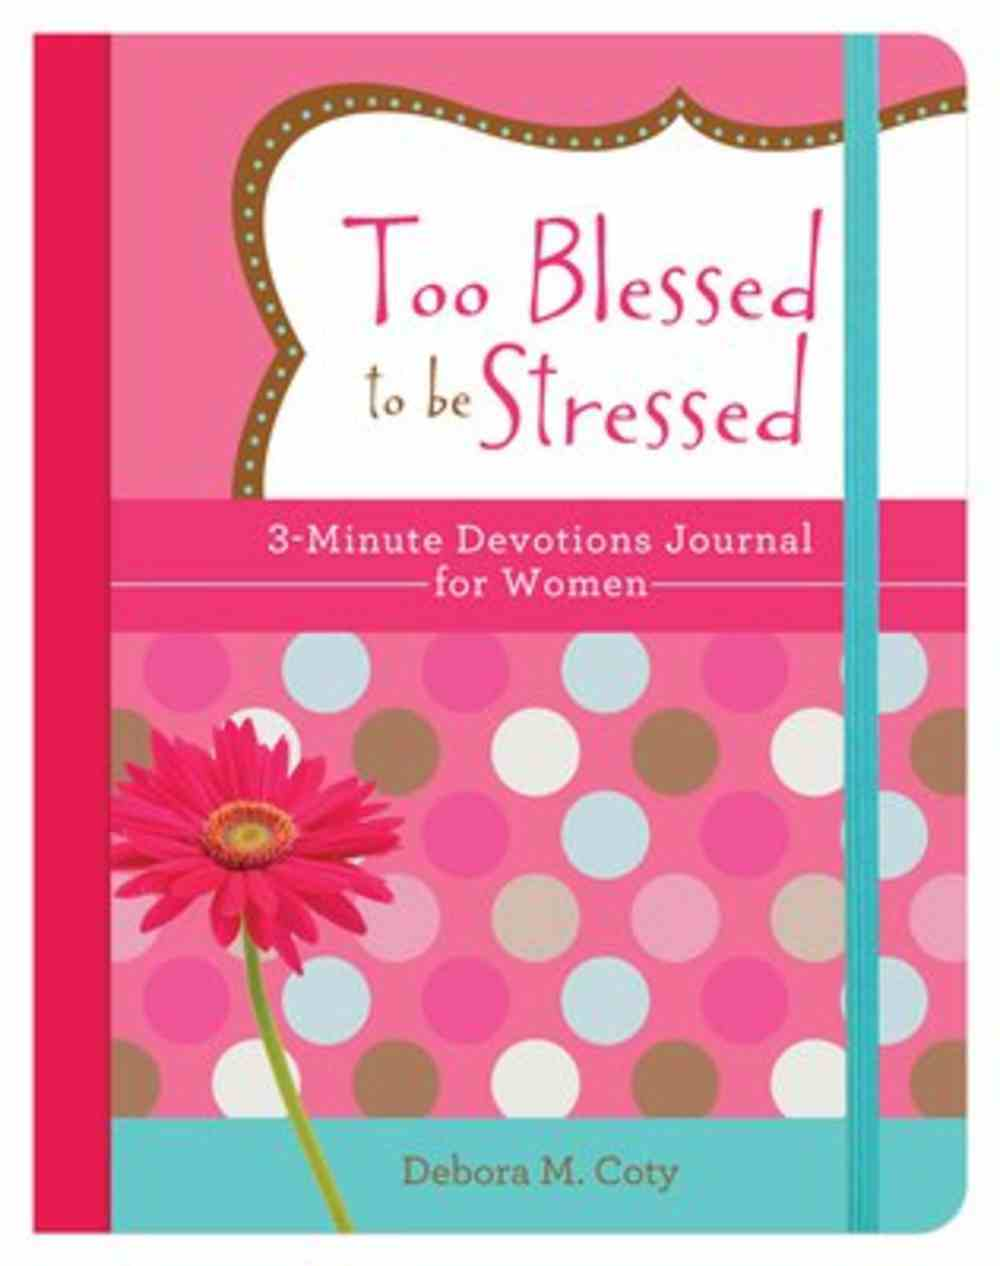 Too Blessed to Be Stressed: 3-Minute Devotions Journal For Women Paperback